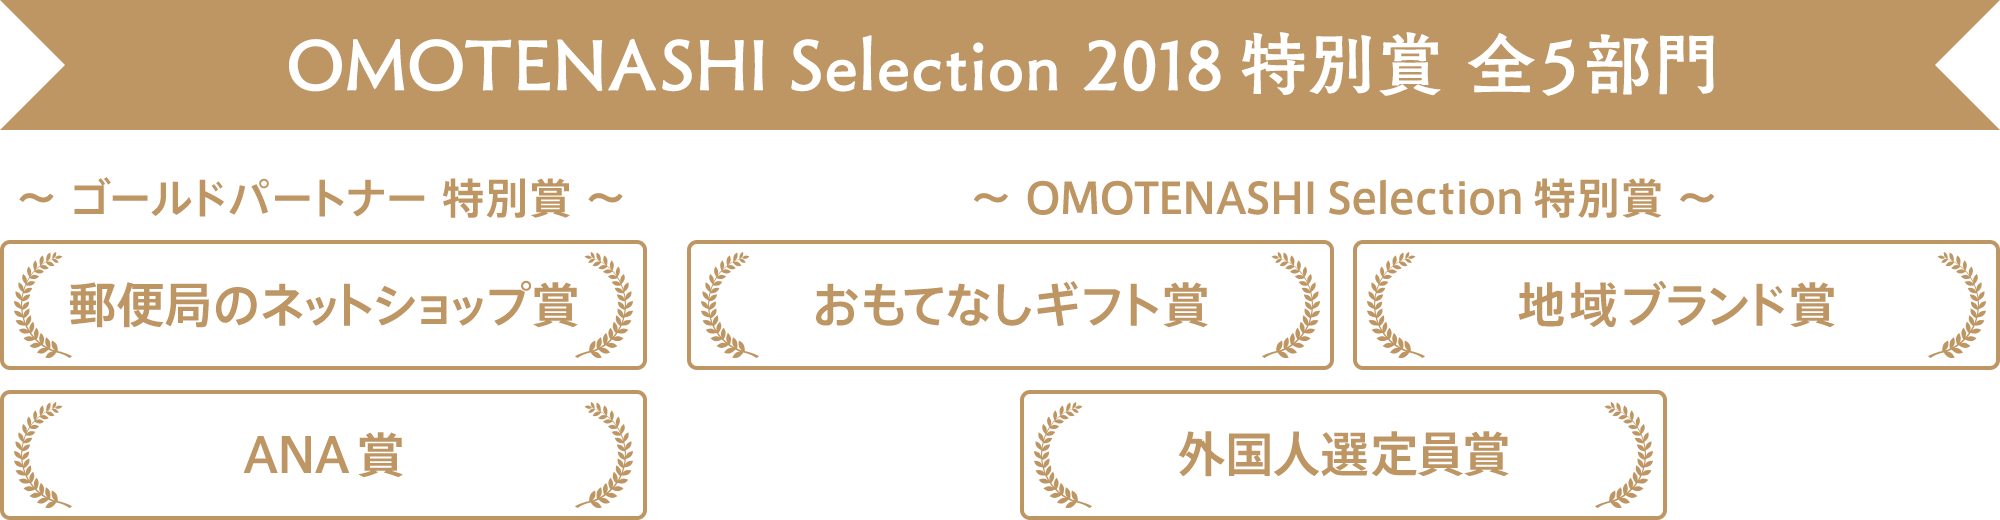 OMOTENASHI Selection 2018 特別賞 全5部門